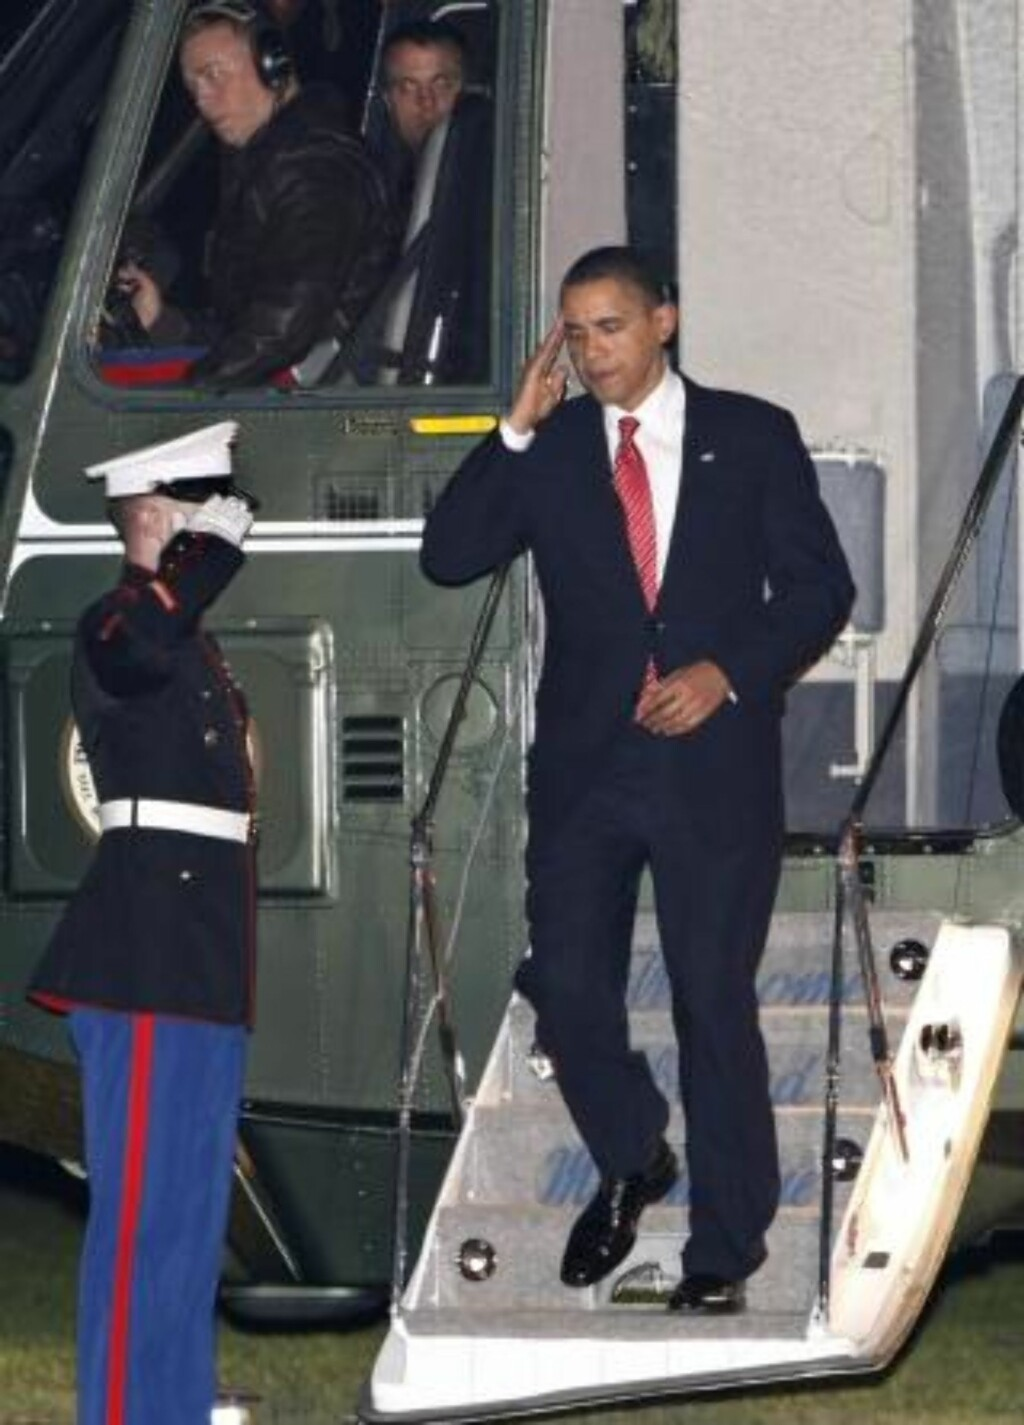 SVIPPTUR:  President Barack Obama tilbake i Washington D.C. og Det hvite hus mindre enn tre timer etter talen på militærakademiet i West Point i New York i natt. Foto: SCOTT APPLEWHITE, AP/SCANPIX.